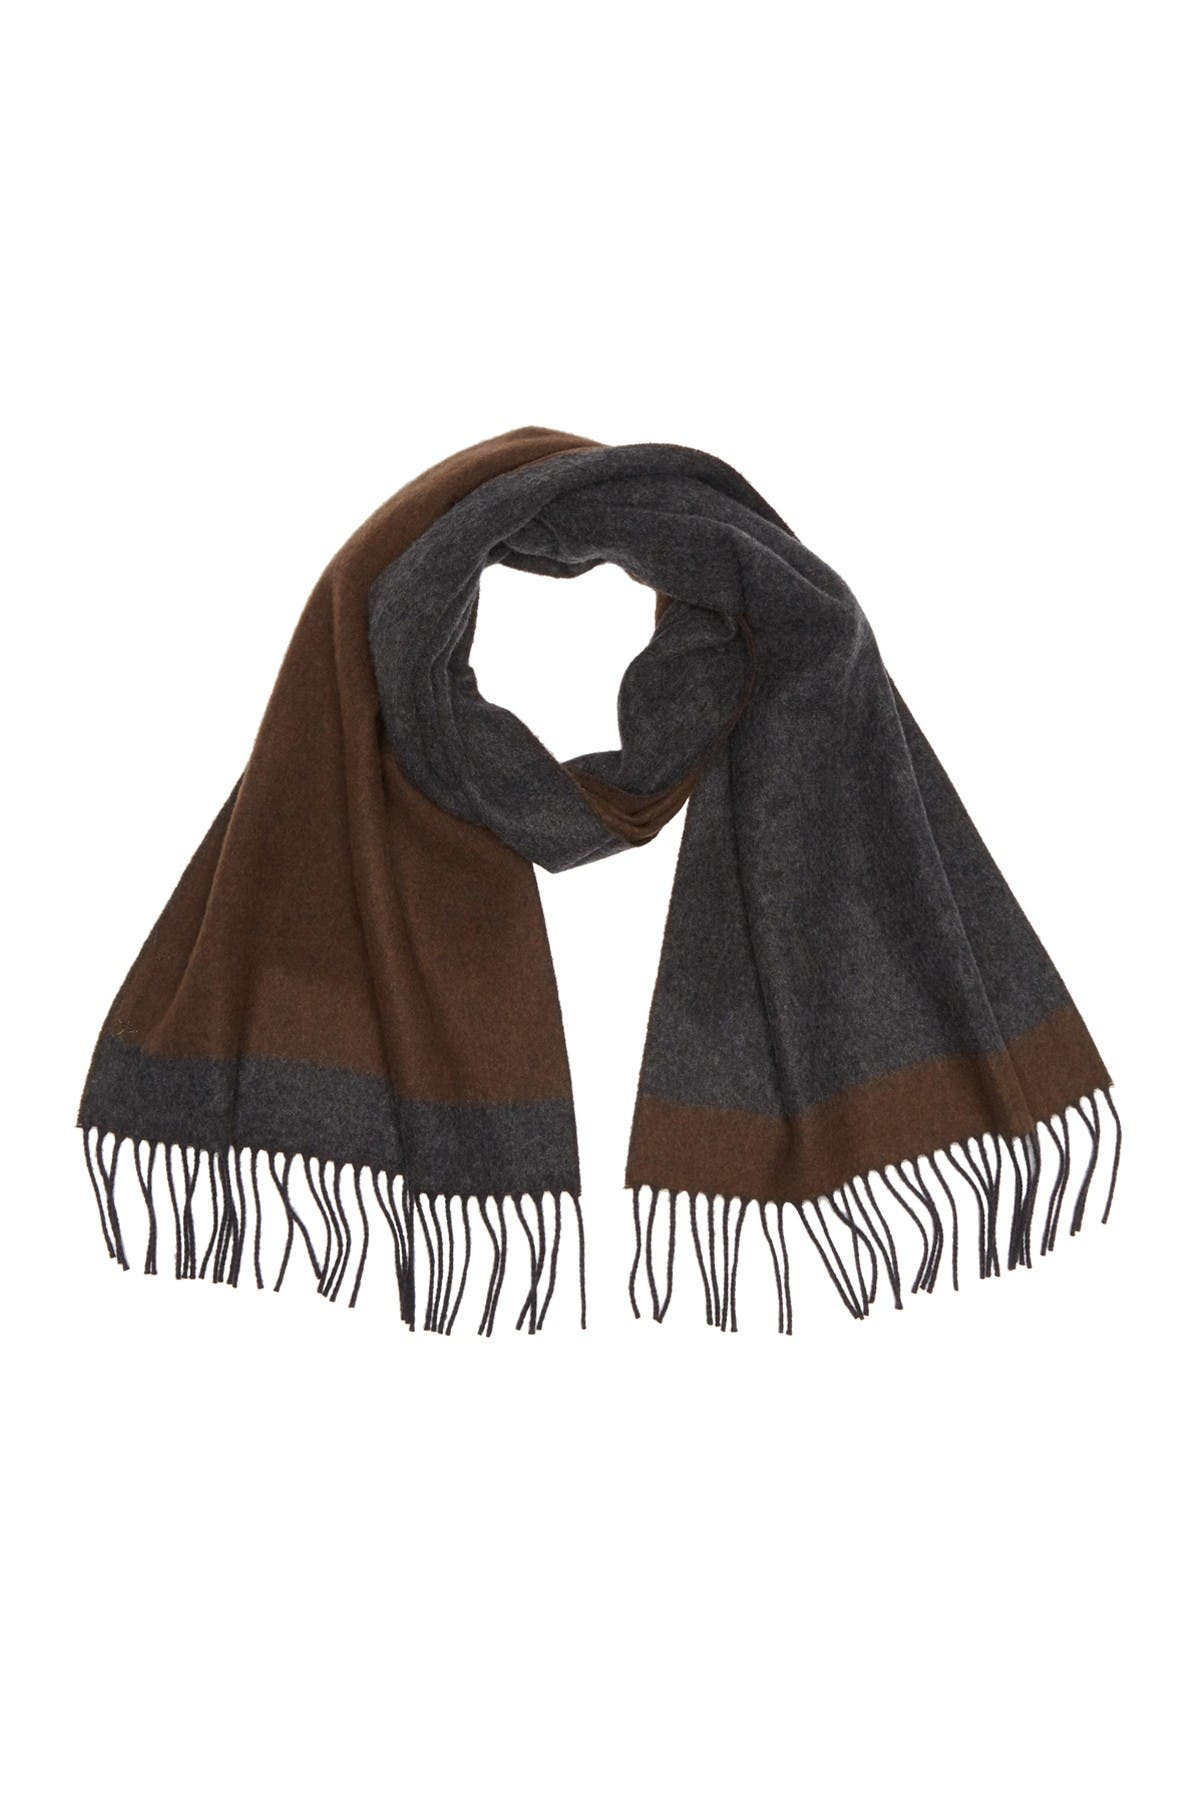 Image of Chelsey Imports Solid Reversible Scarf